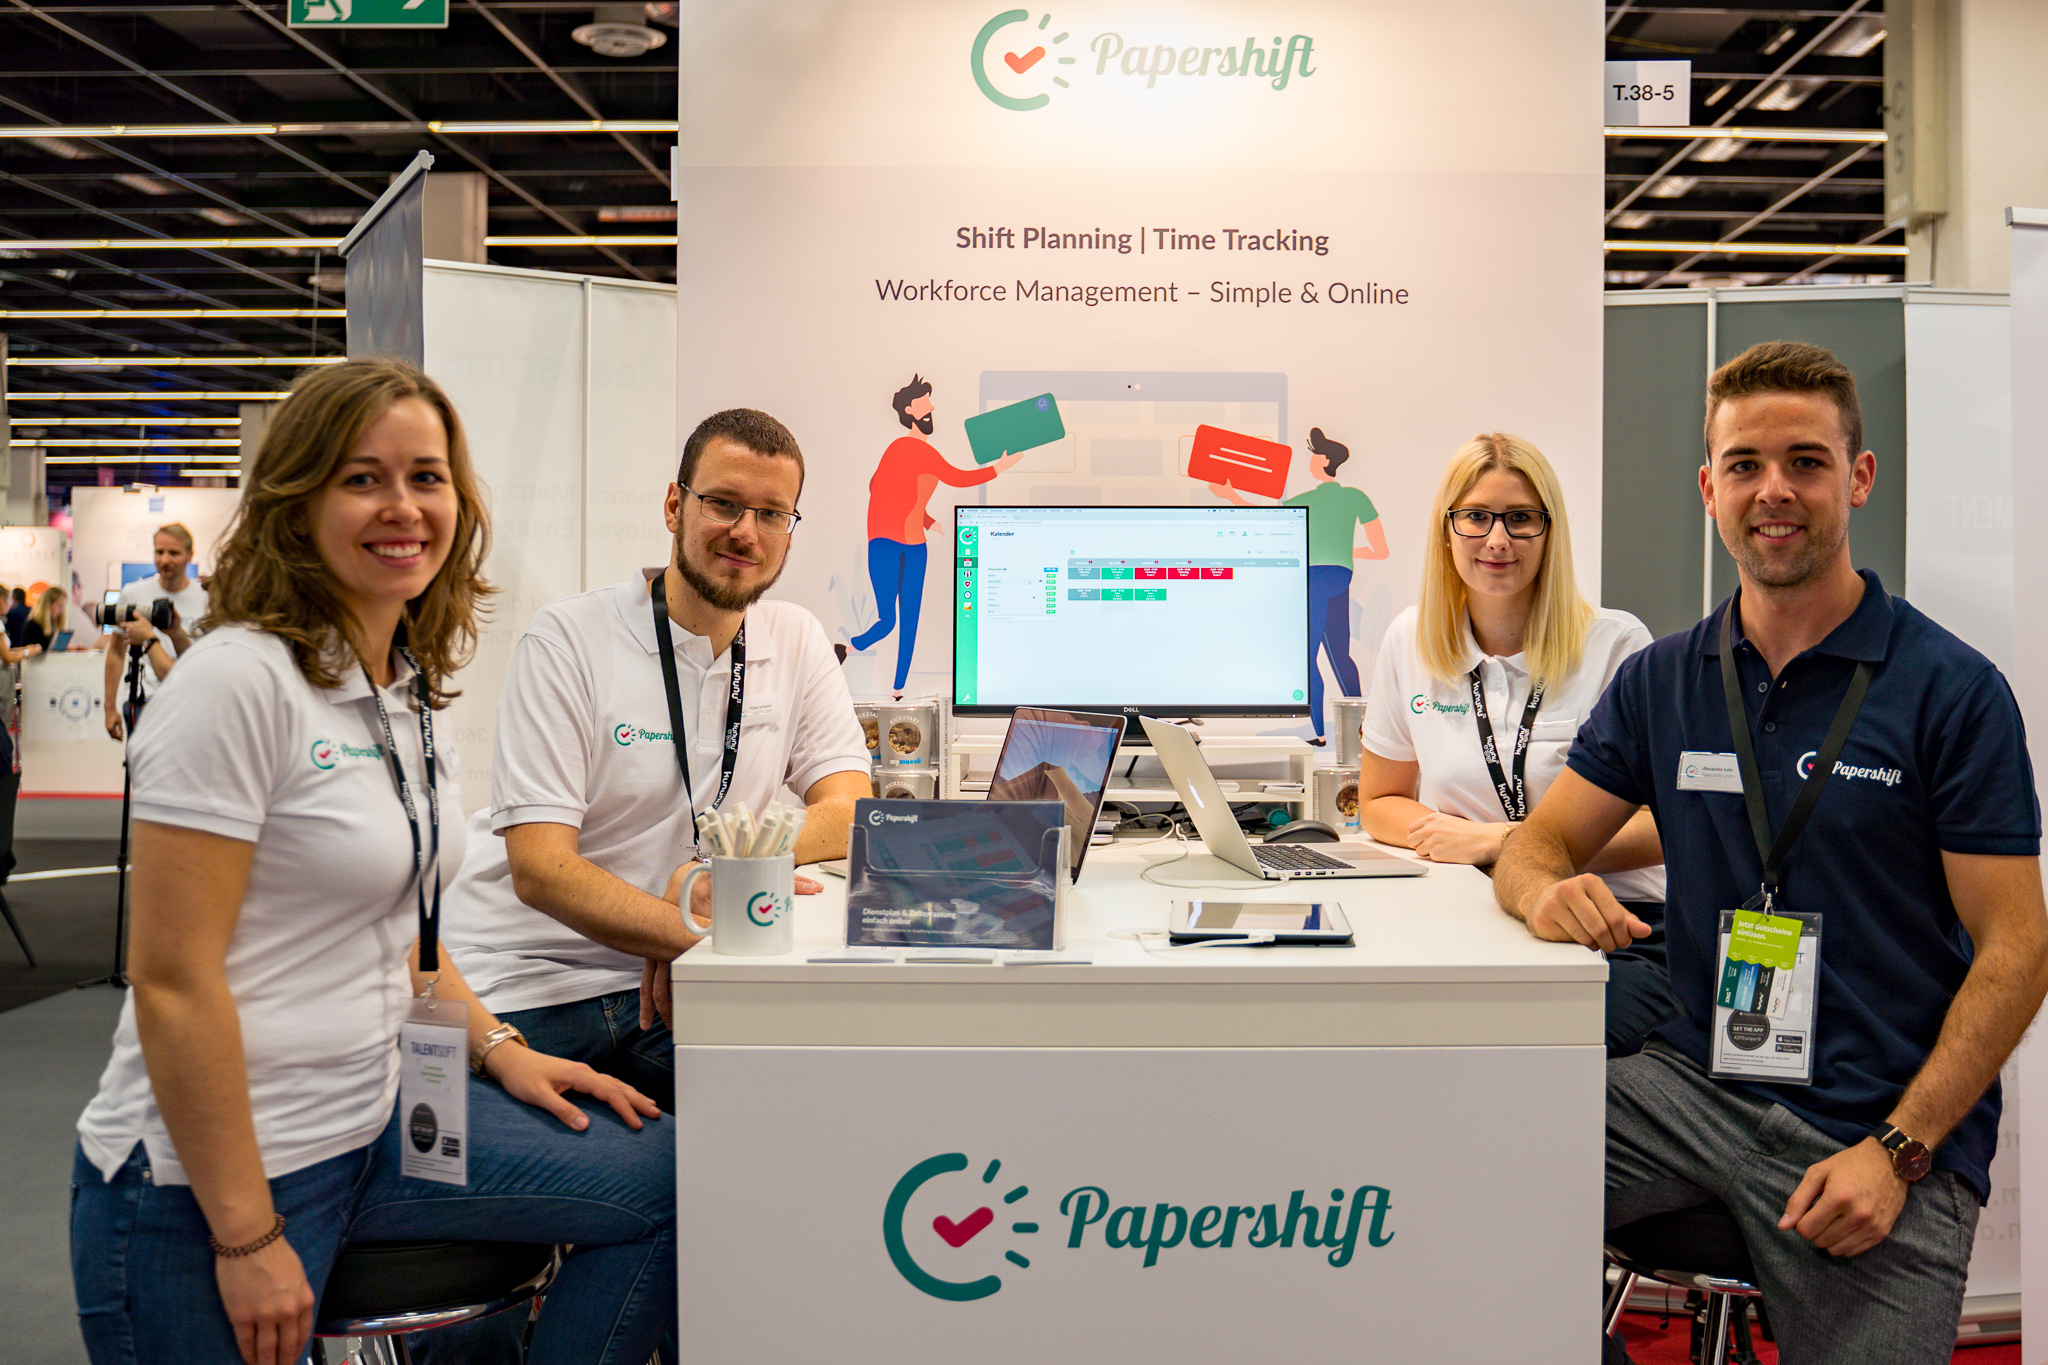 Rockstar Papershift team at the ZPE 2019